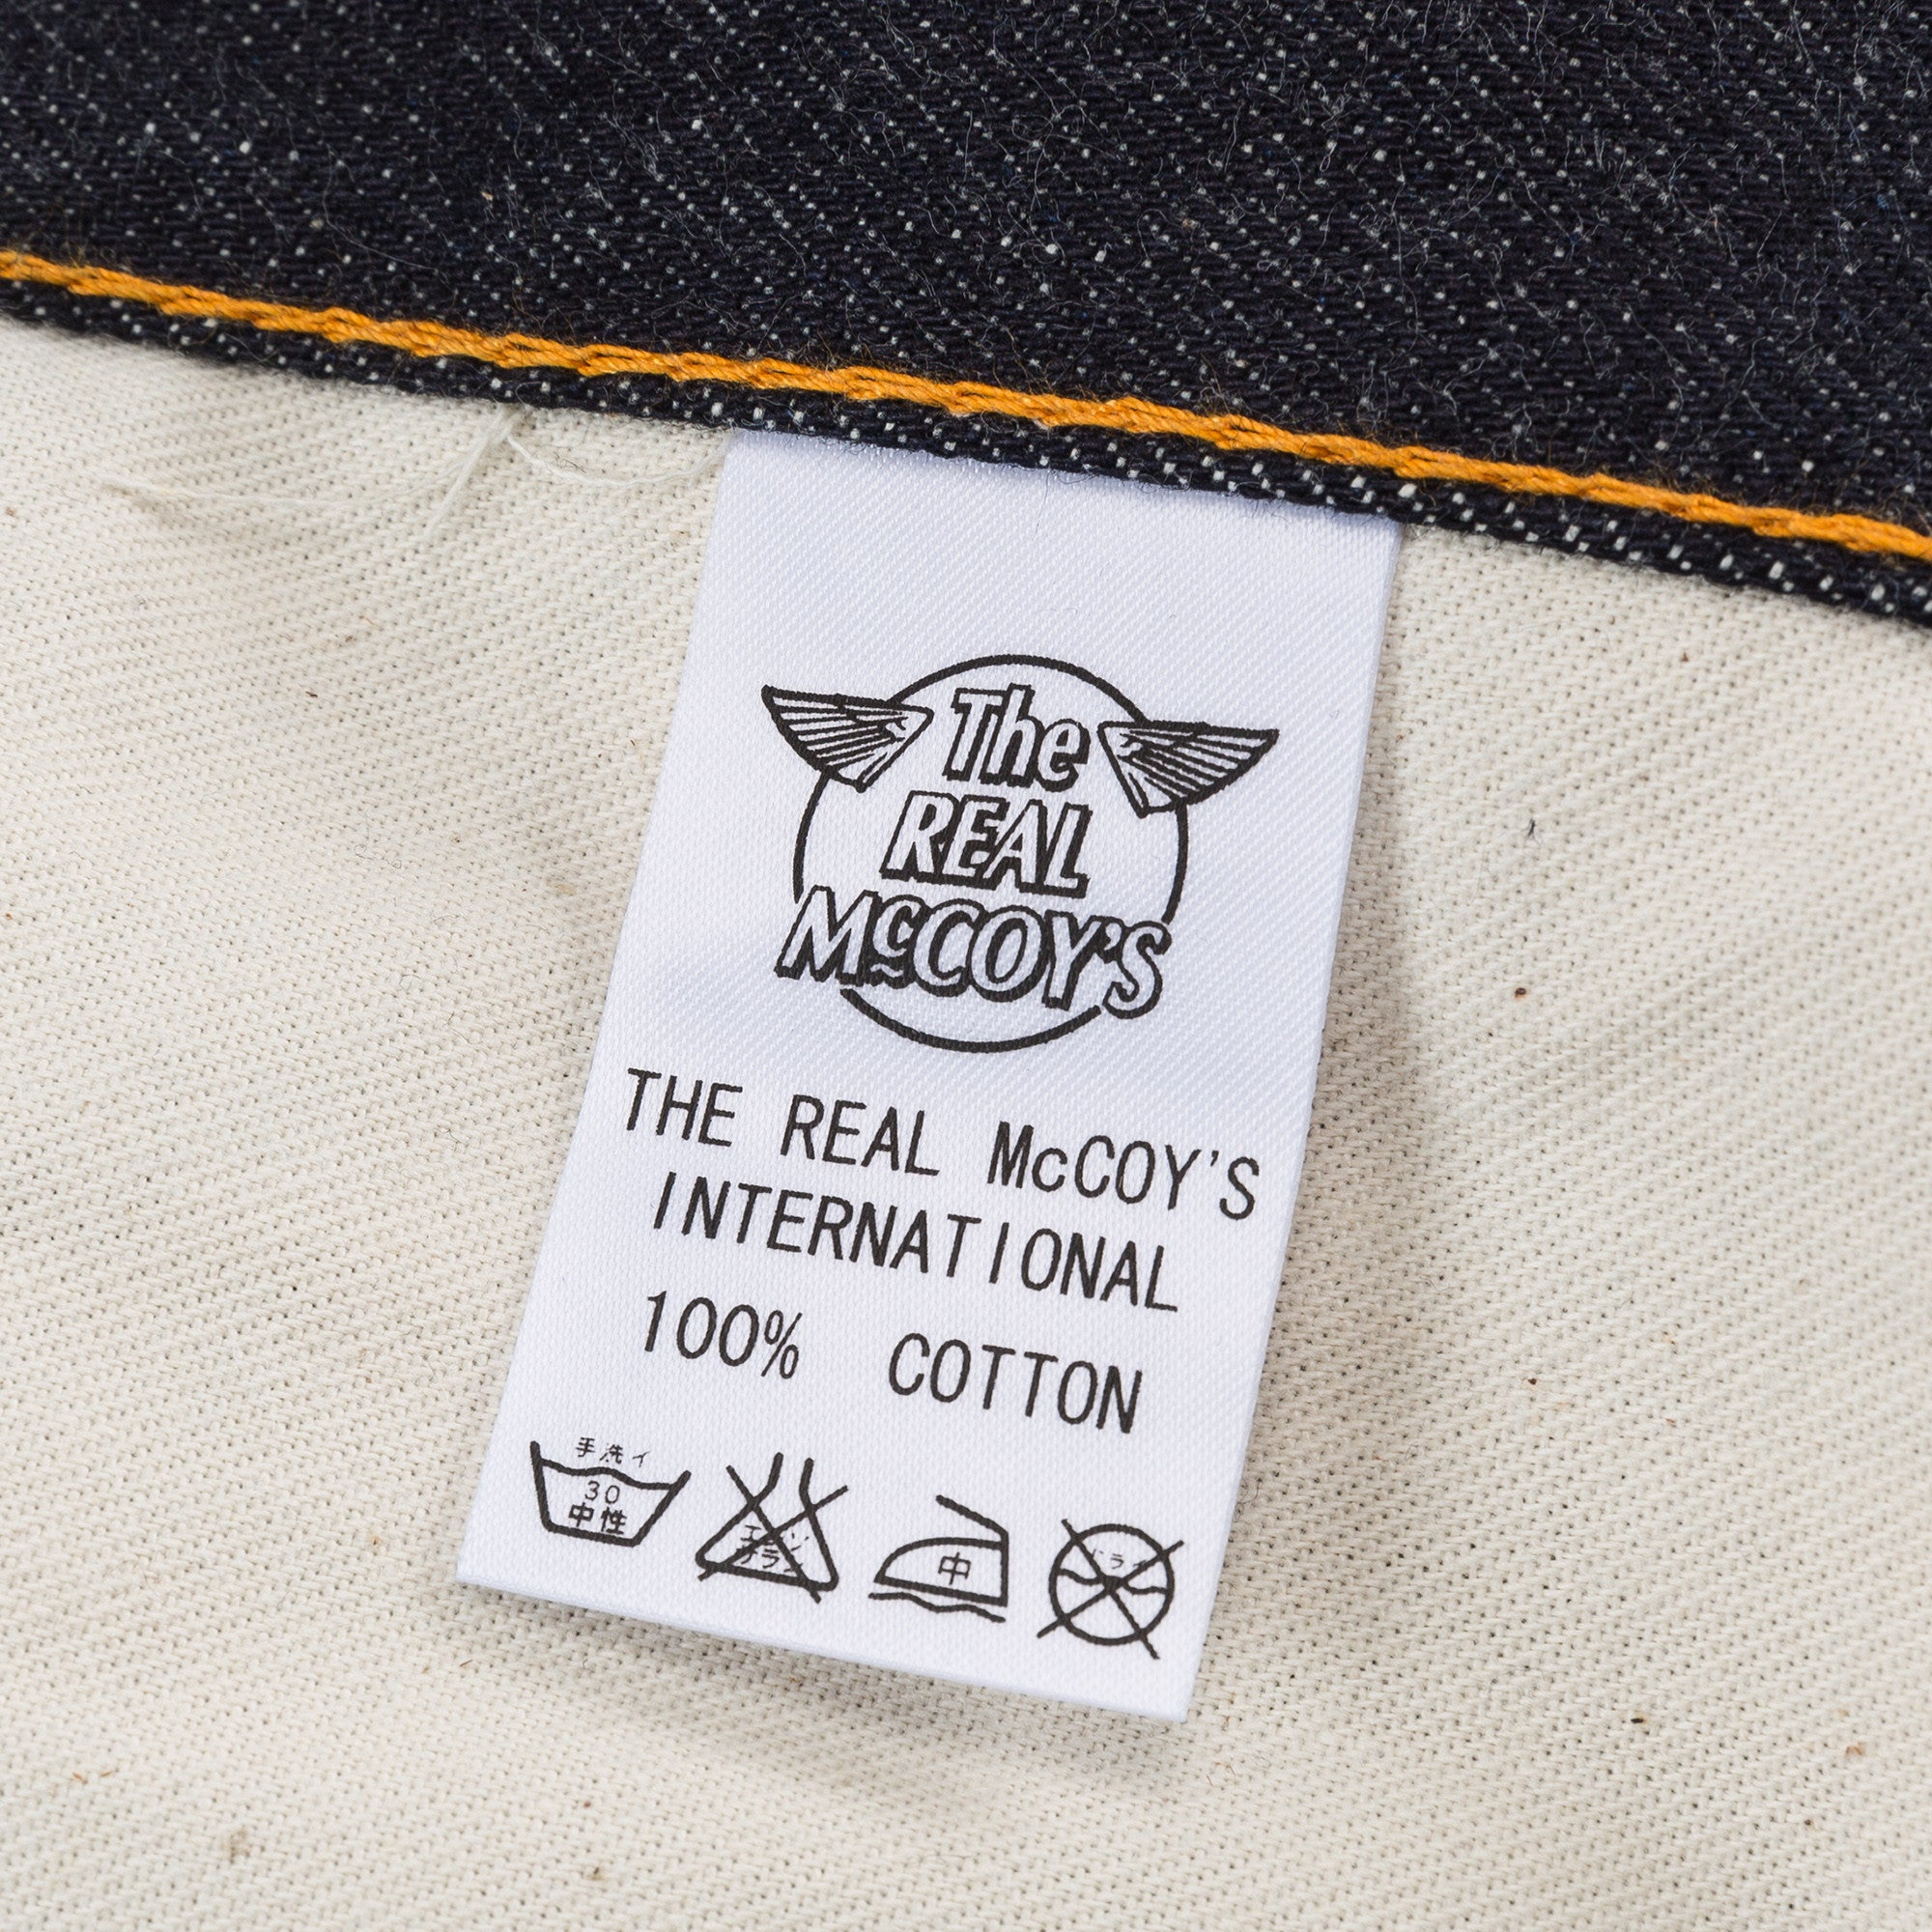 The Real Mccoys Lot 991xh Jeans